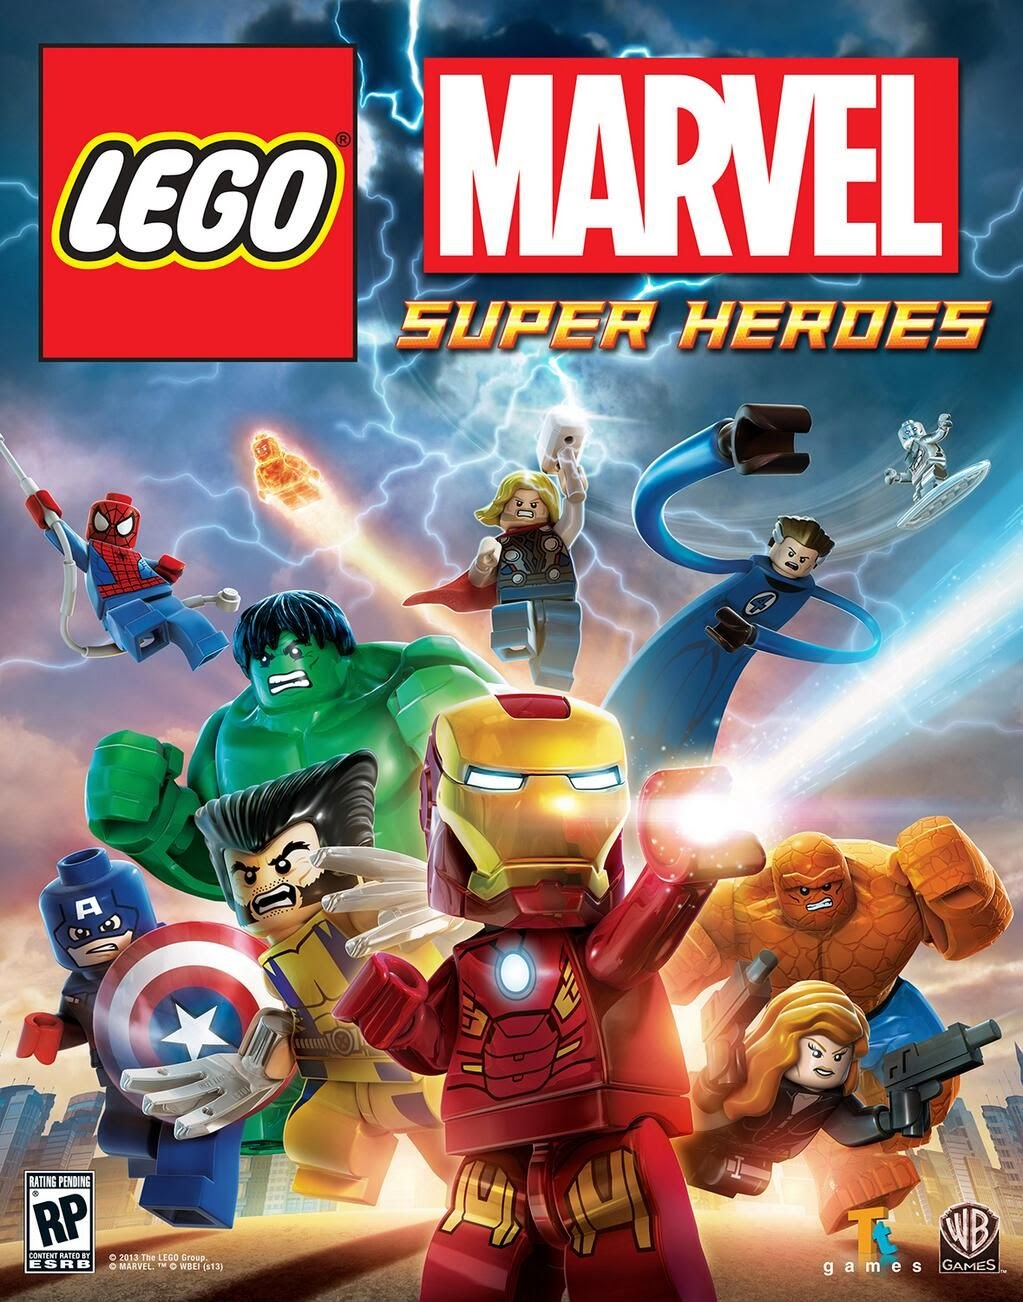 Lego Marvel Super Heroes Maximum Overload  (2013) Short